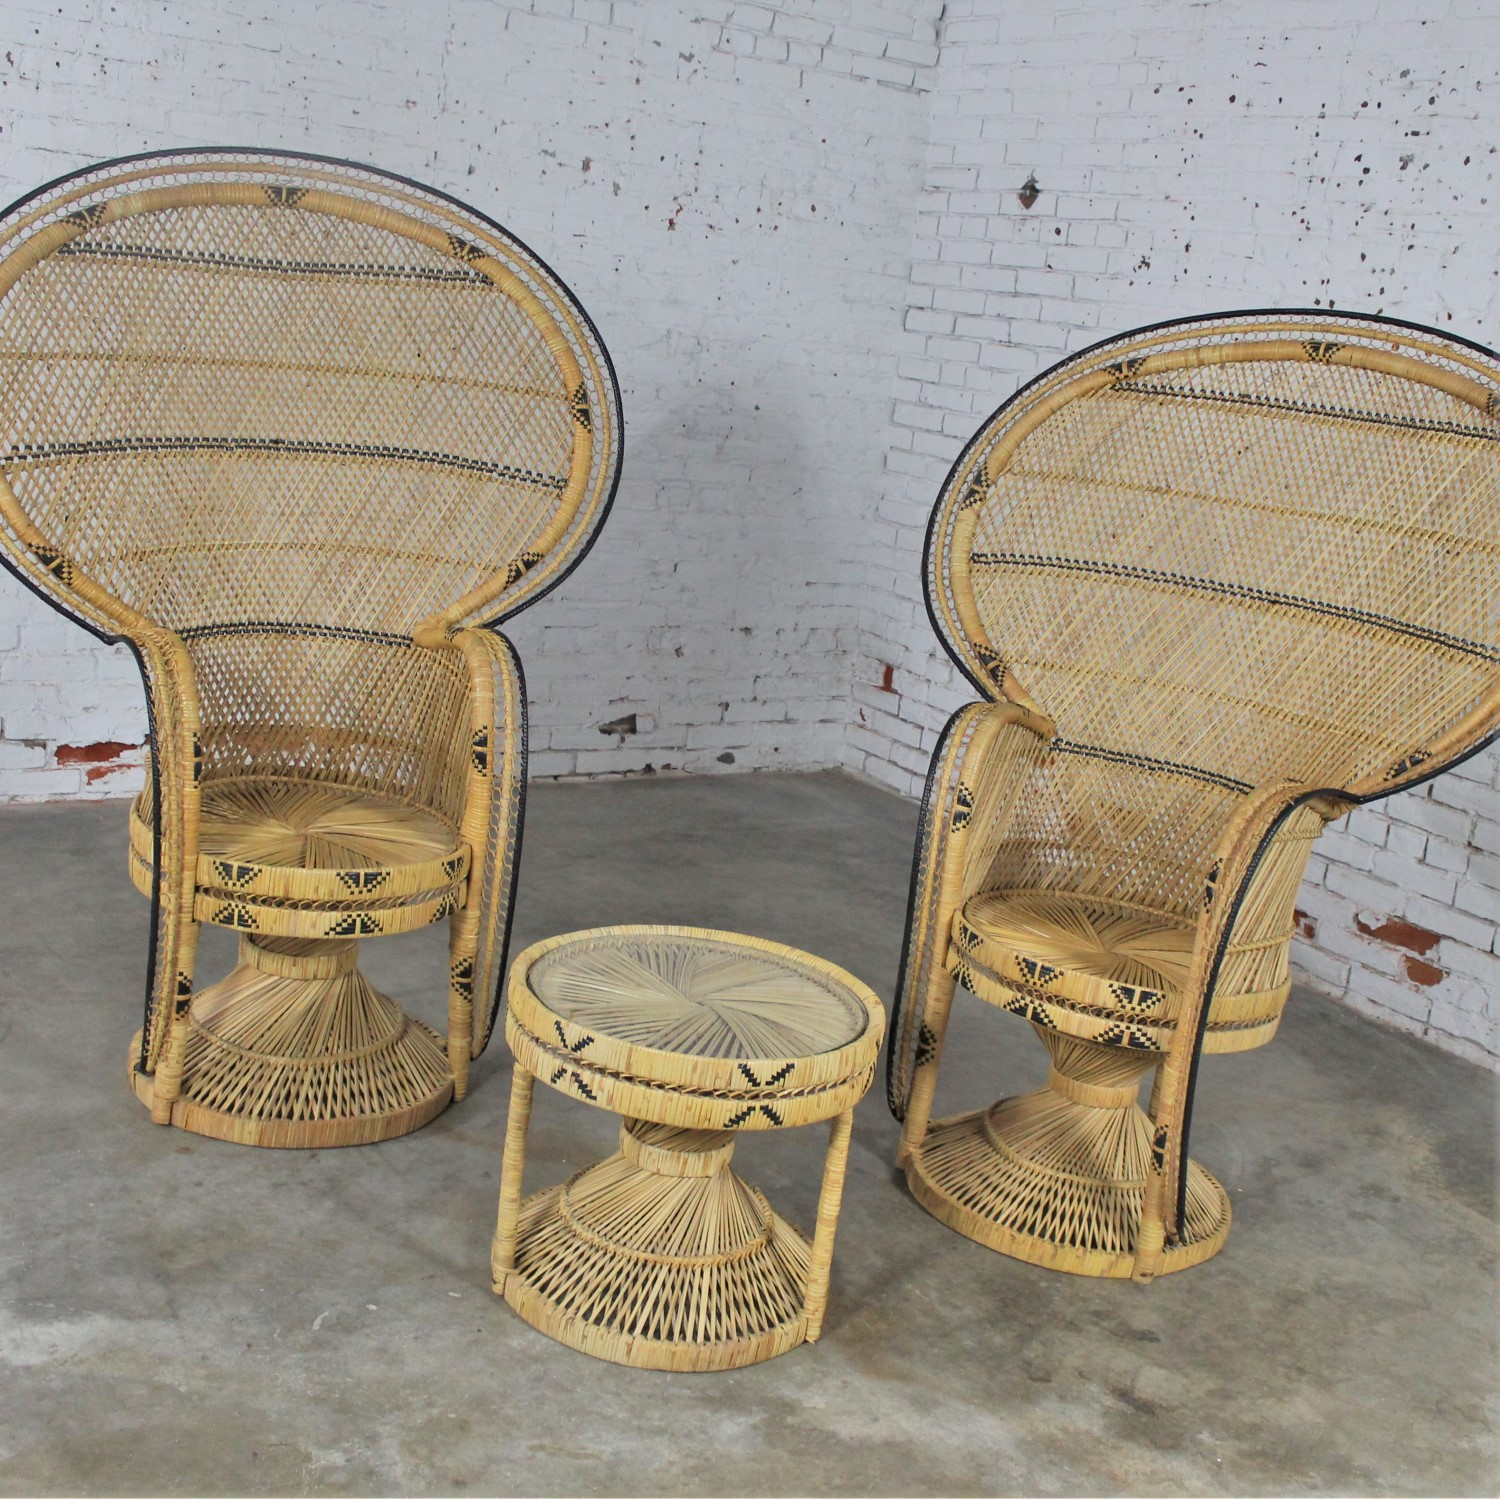 Stupendous Pair Of Wicker Rattan Peacock Fan Back Chairs And Side Table Gmtry Best Dining Table And Chair Ideas Images Gmtryco